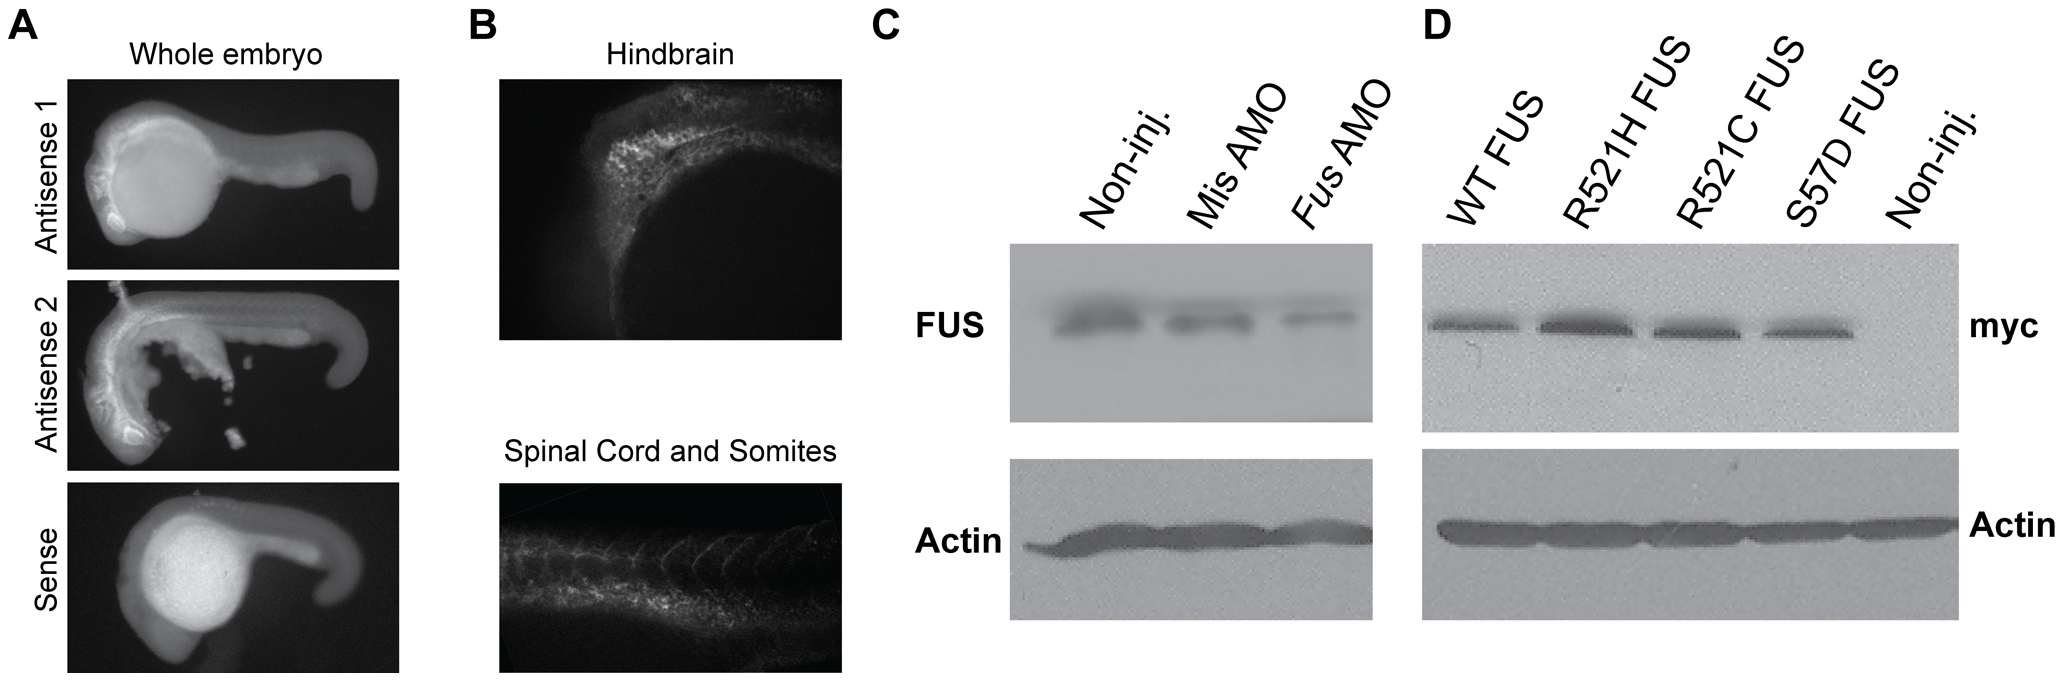 <i>Fus</i> mRNA expression in early development of zebrafish and Fus levels are reduced upon KD with a specific AMO.